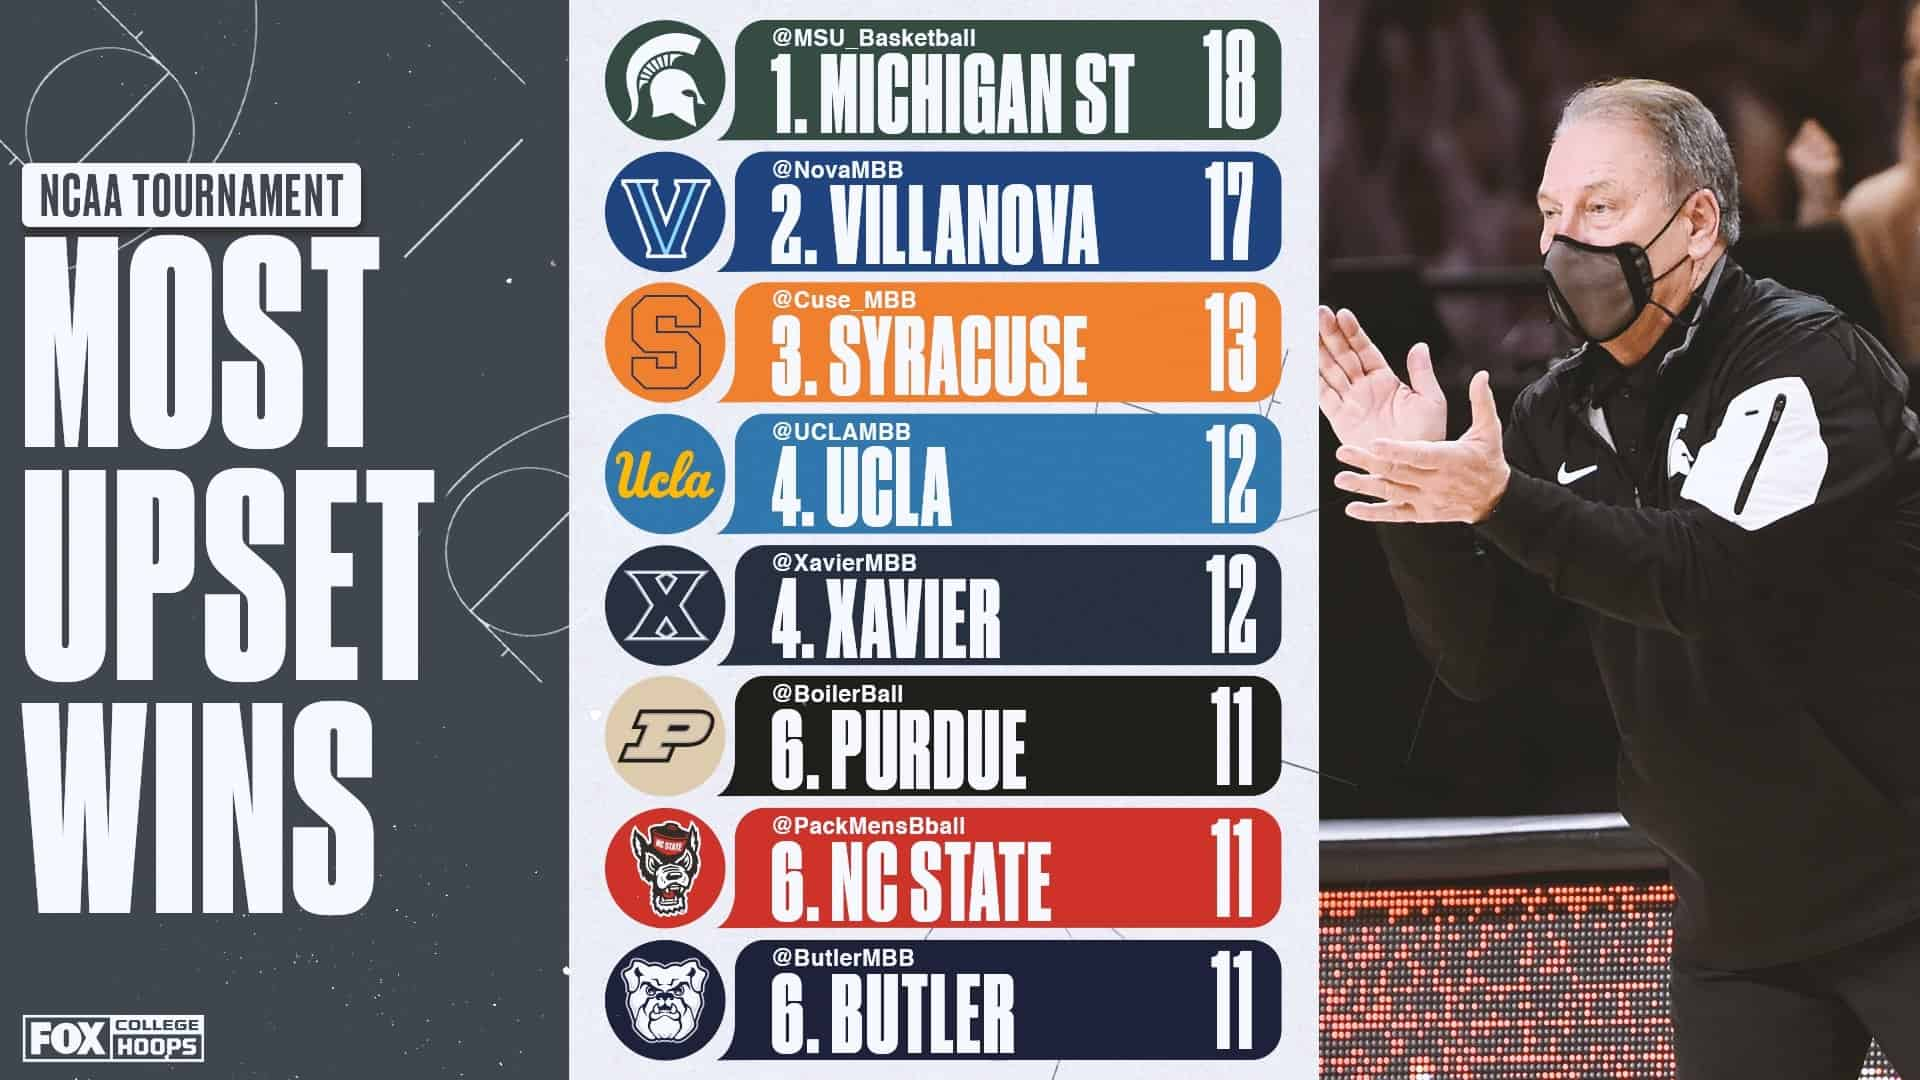 March Madness 2021 upset teams